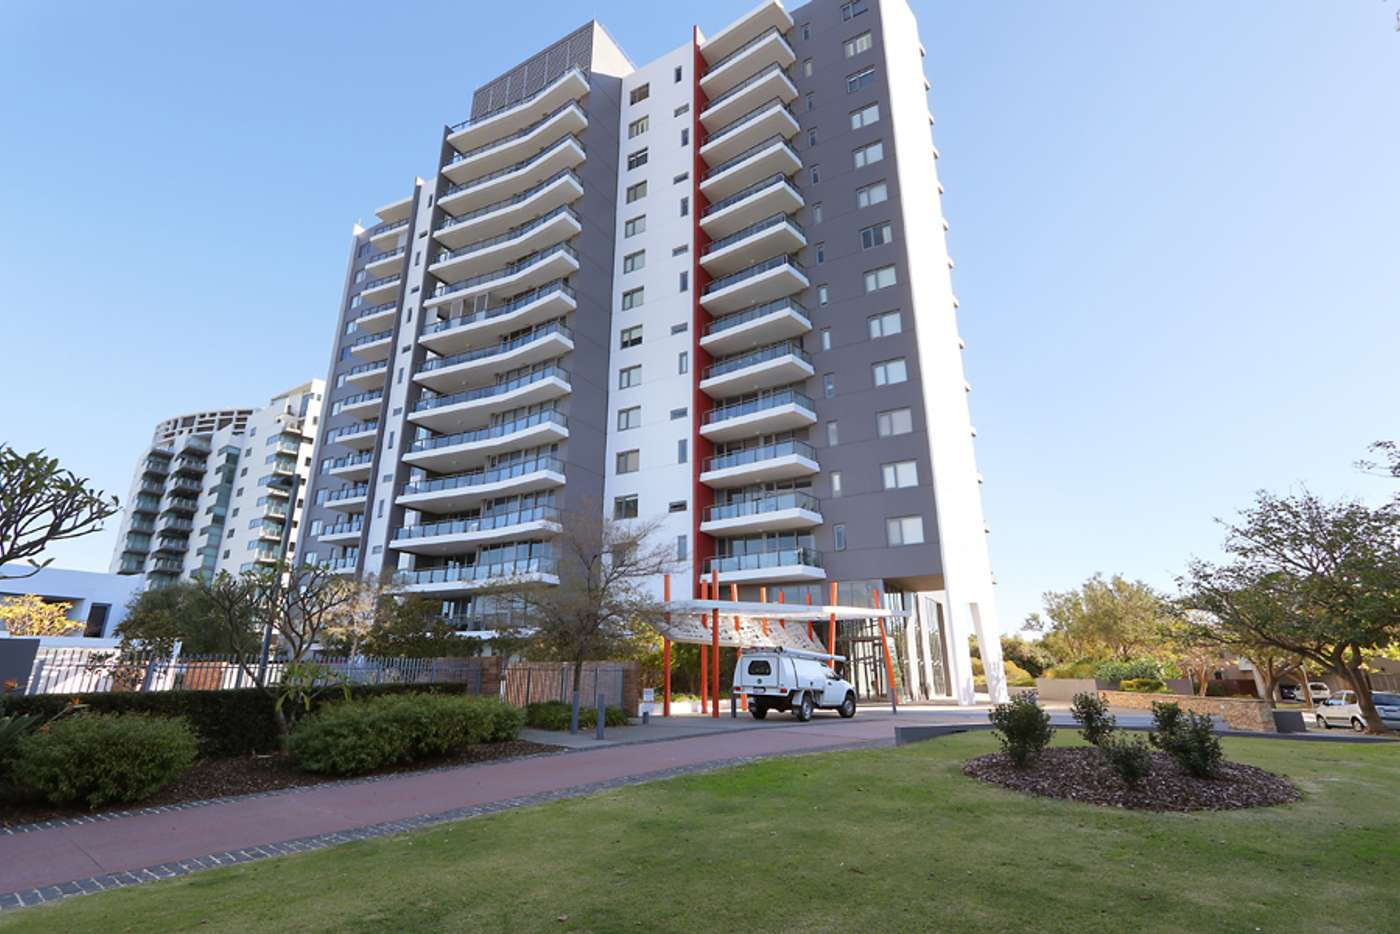 Main view of Homely apartment listing, 905/2 Oldfield Street, Burswood WA 6100